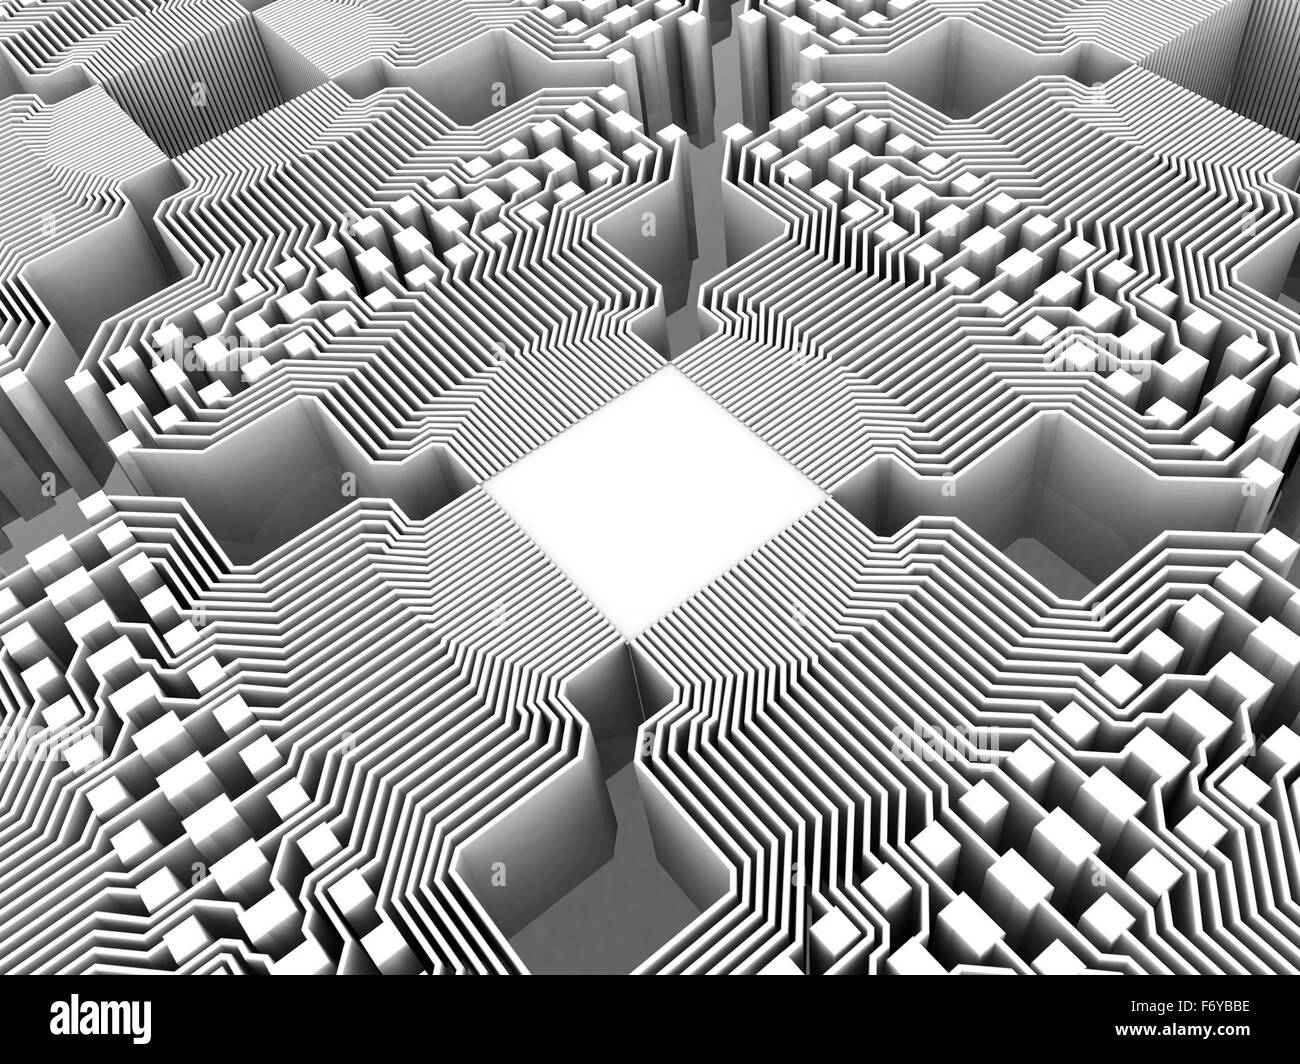 Quantum computer. Conceptual computer artwork of electronic circuitry as part of a quantum computer structure. Stock Photo